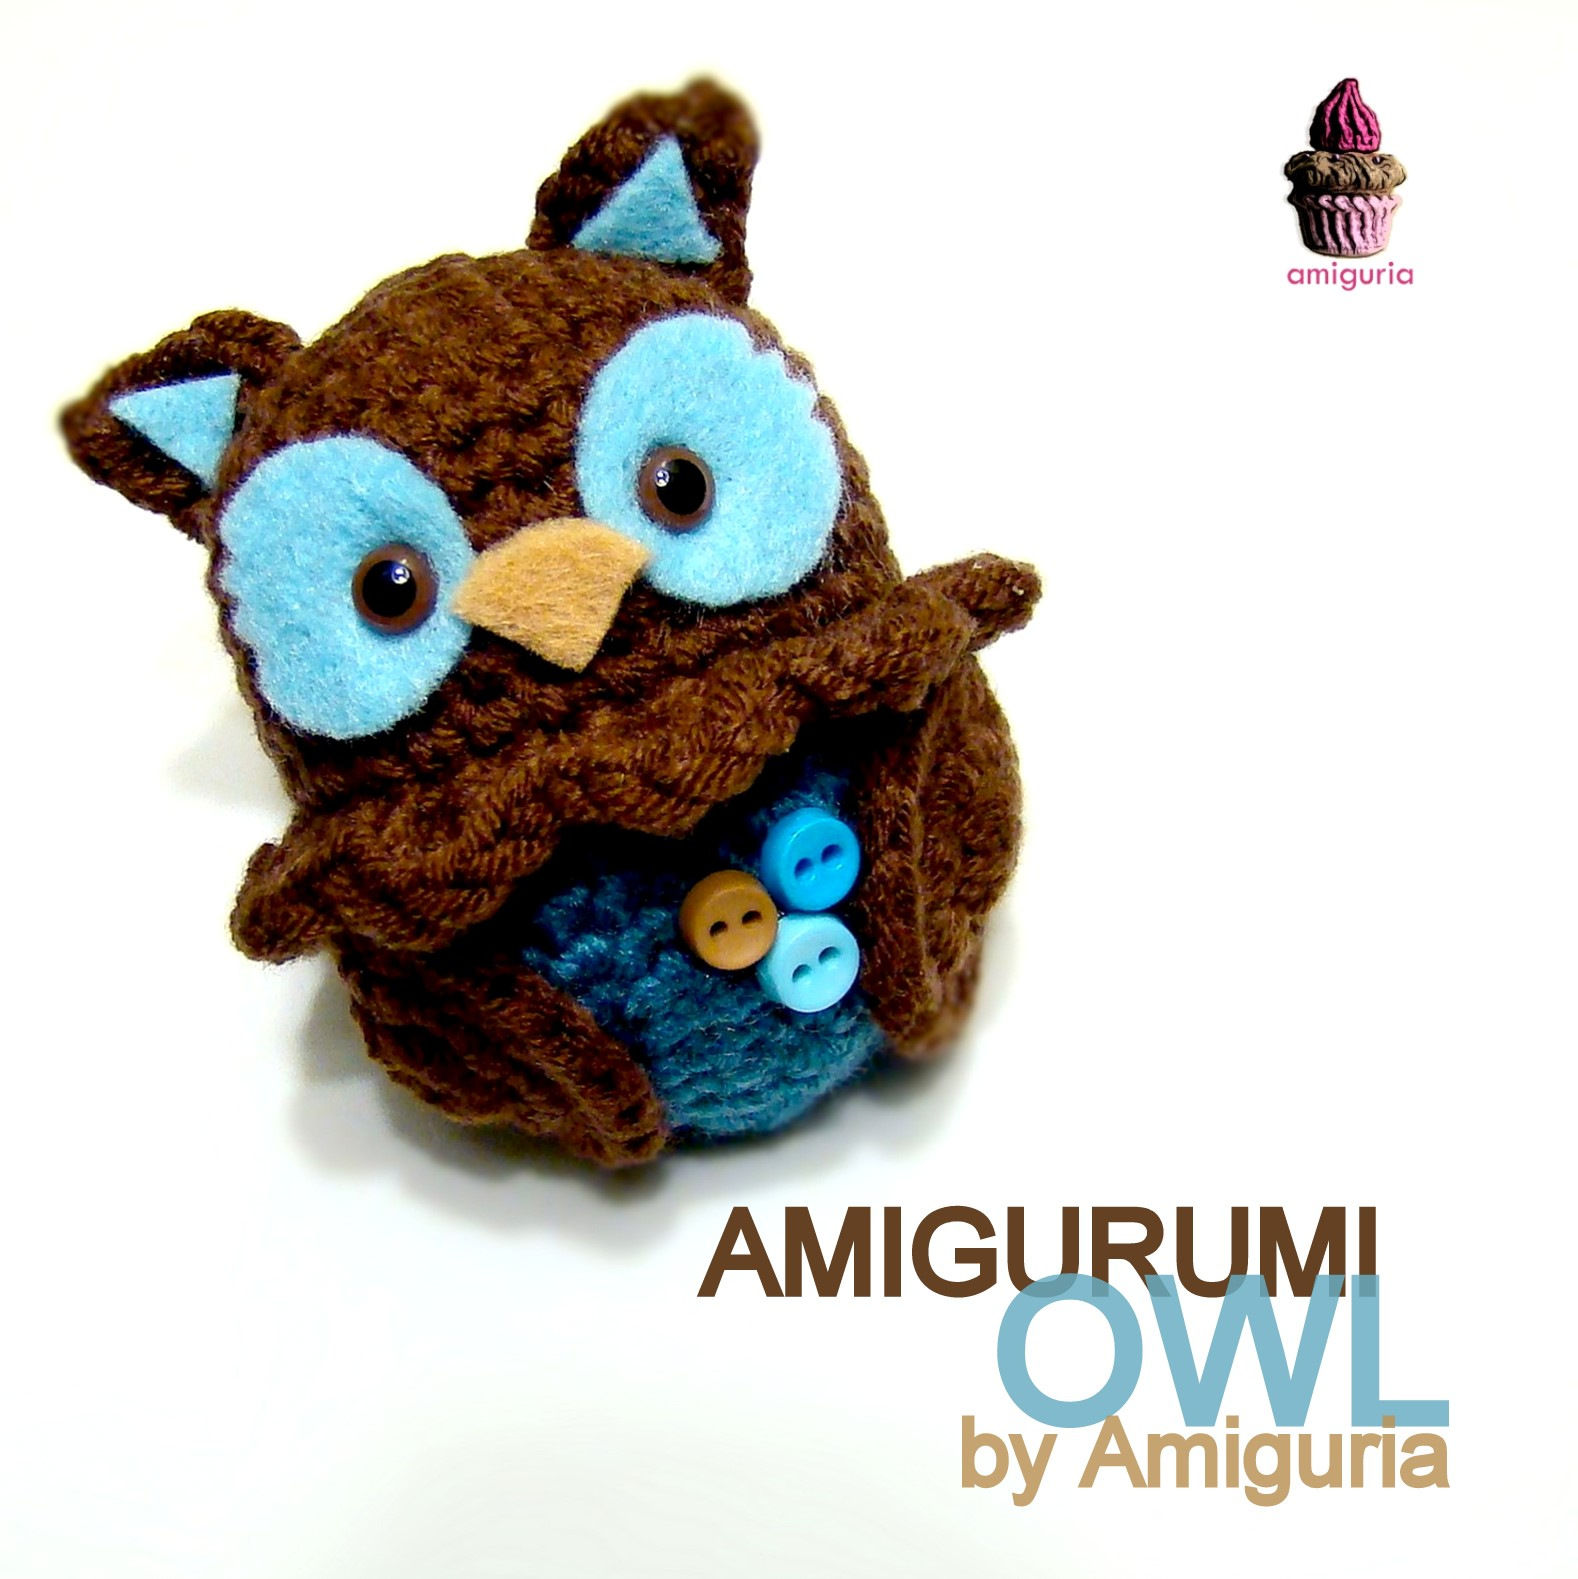 Amigurumi Owl Crochet Patterns Free : amiguria amigurumi: Amigurumi Owl by Amiguria